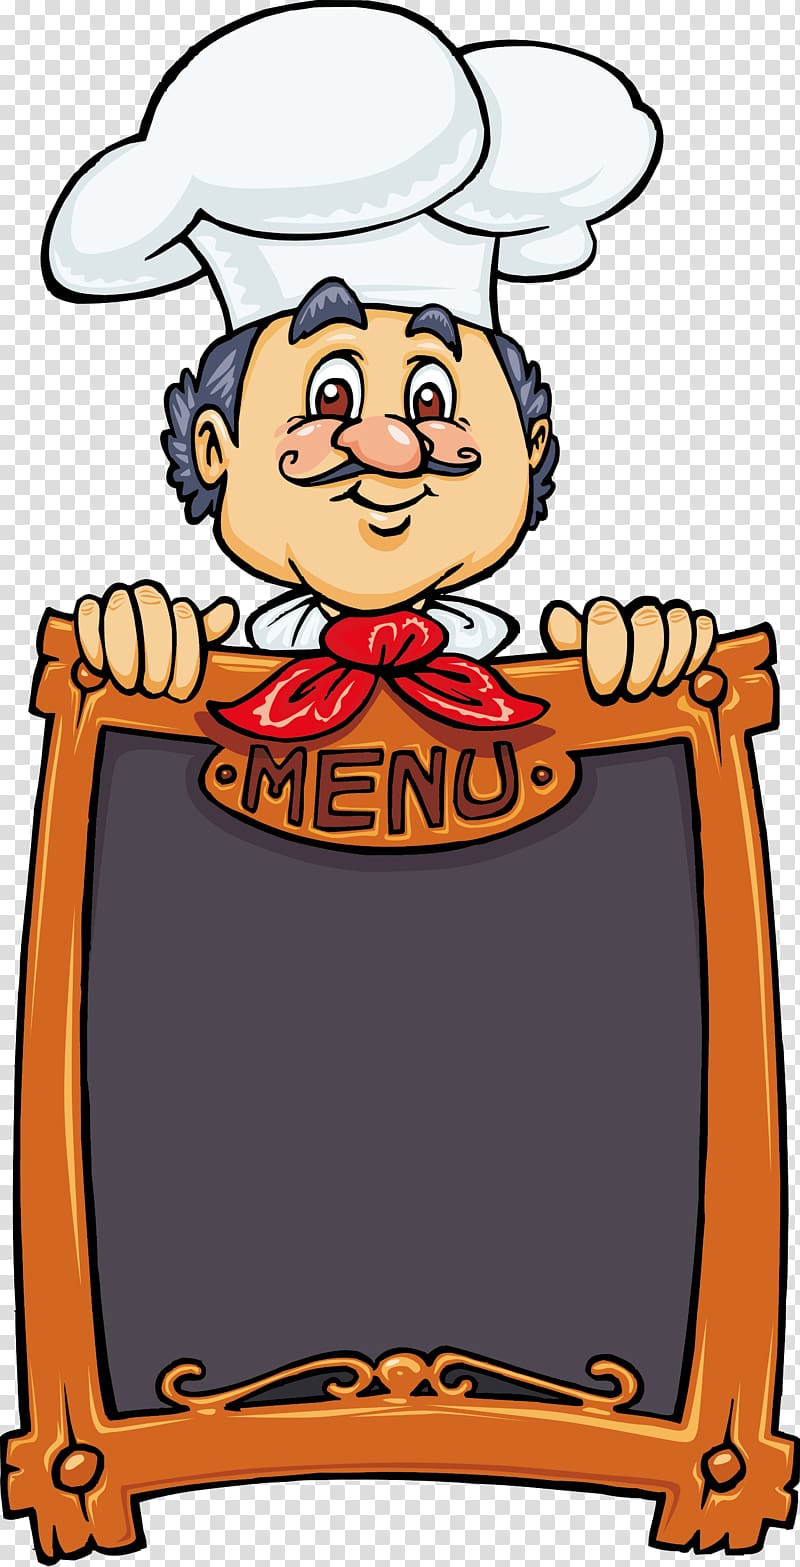 Chef Menu Pizza Cooking, cooking transparent background PNG clipart.